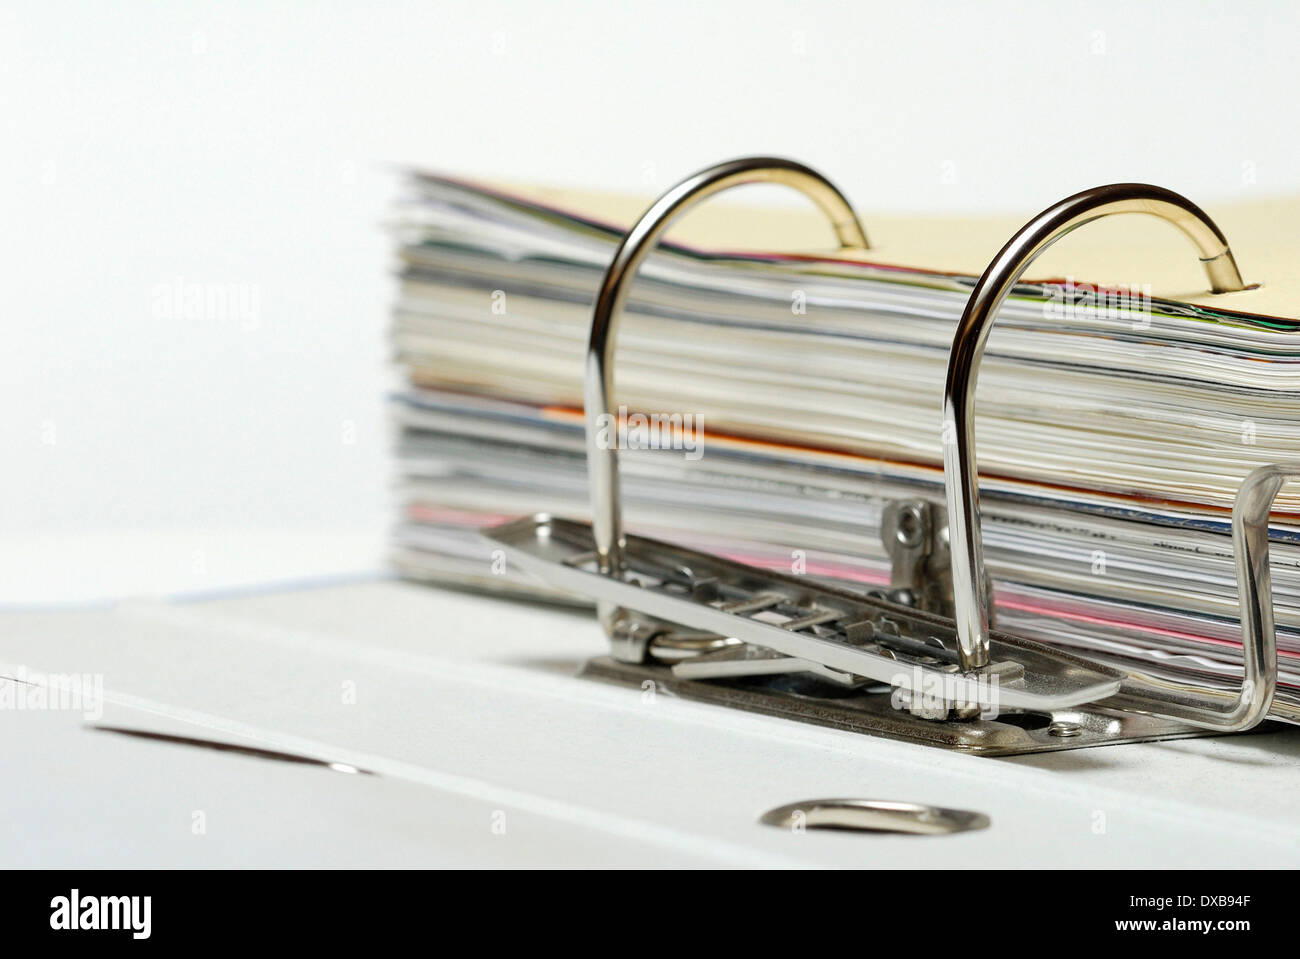 Document file - Stock Image